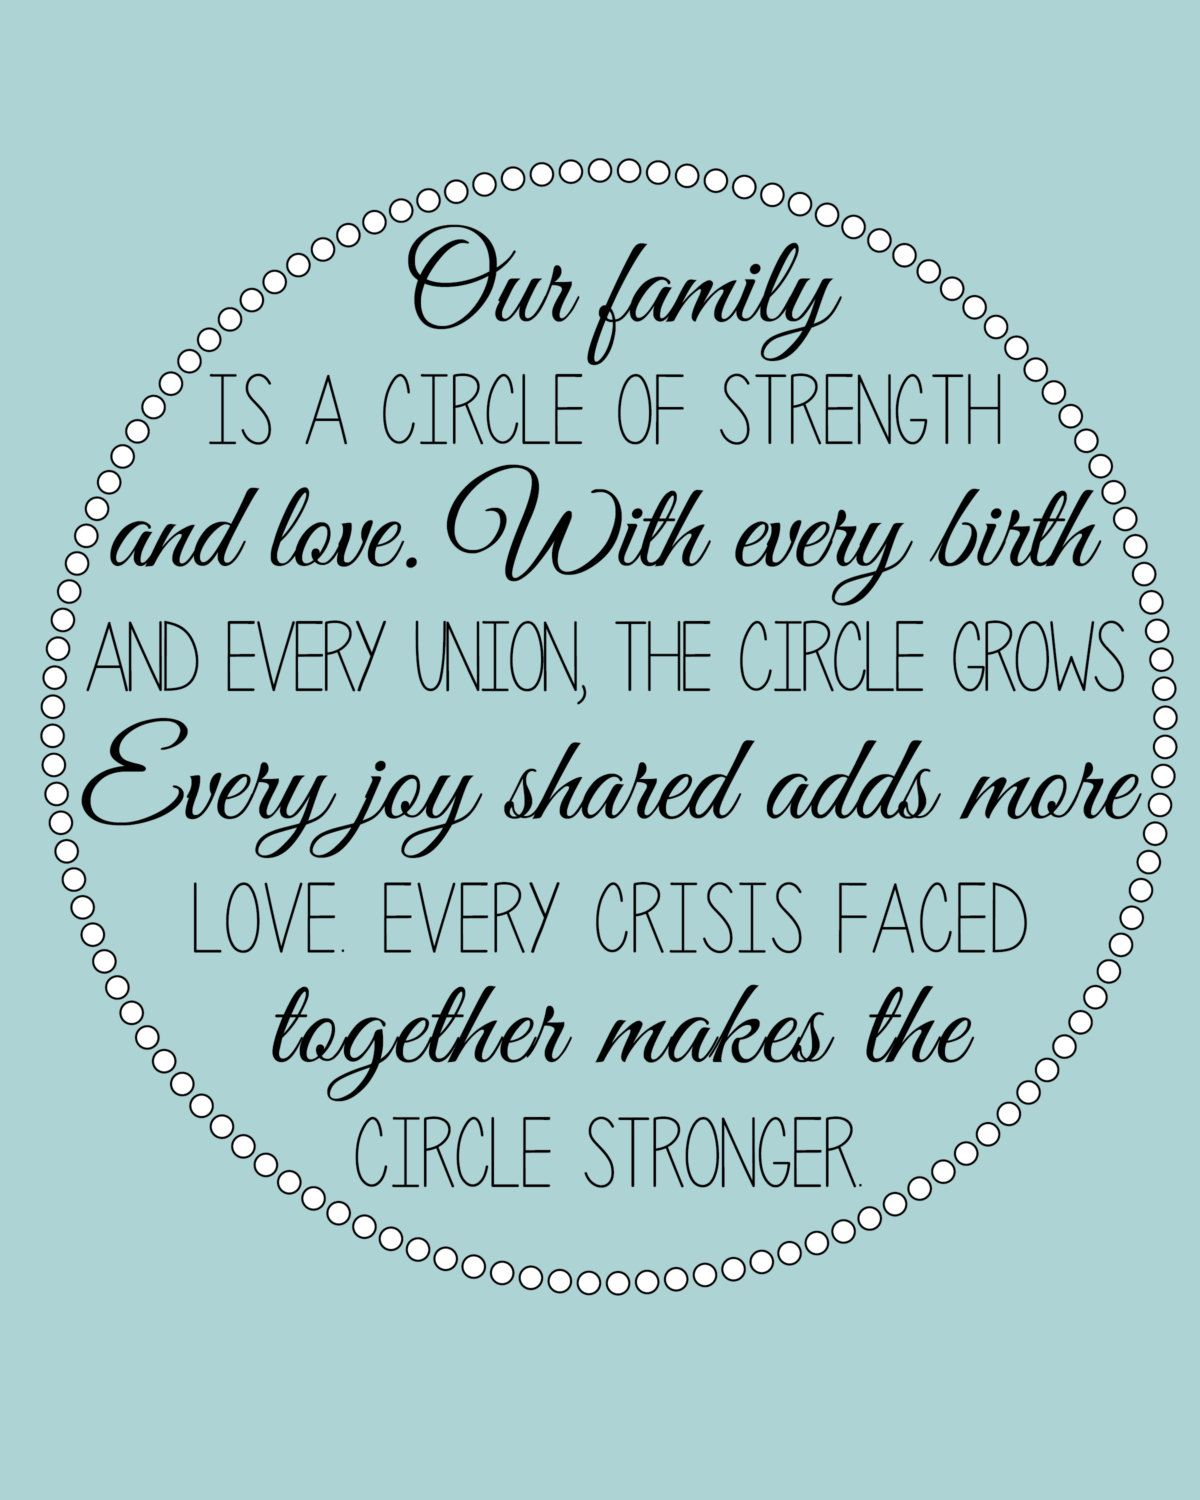 Our Family is a Circle of Strength and Love by ArdentPrint on Etsy